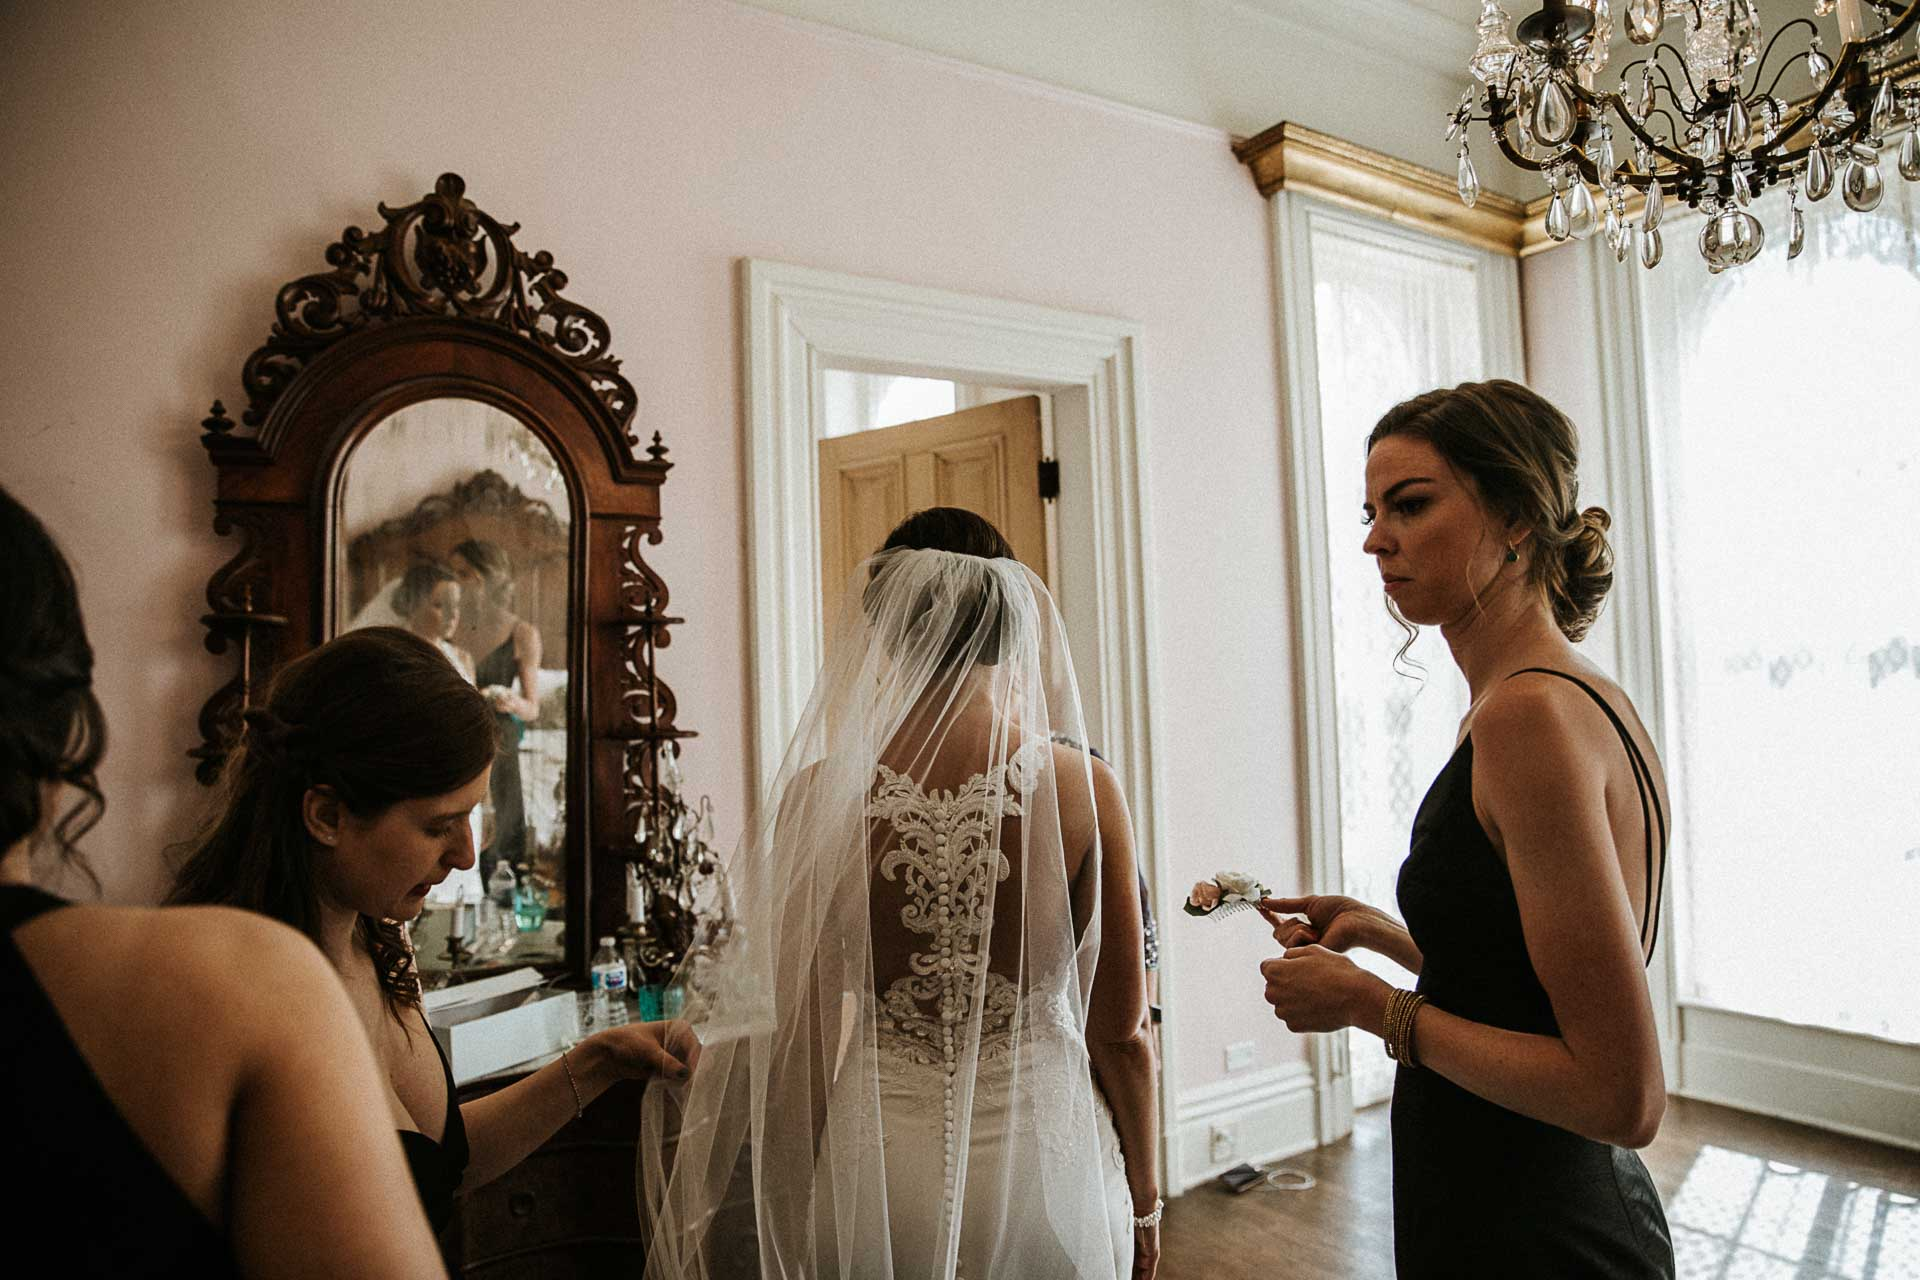 annesdale bride wedding photography